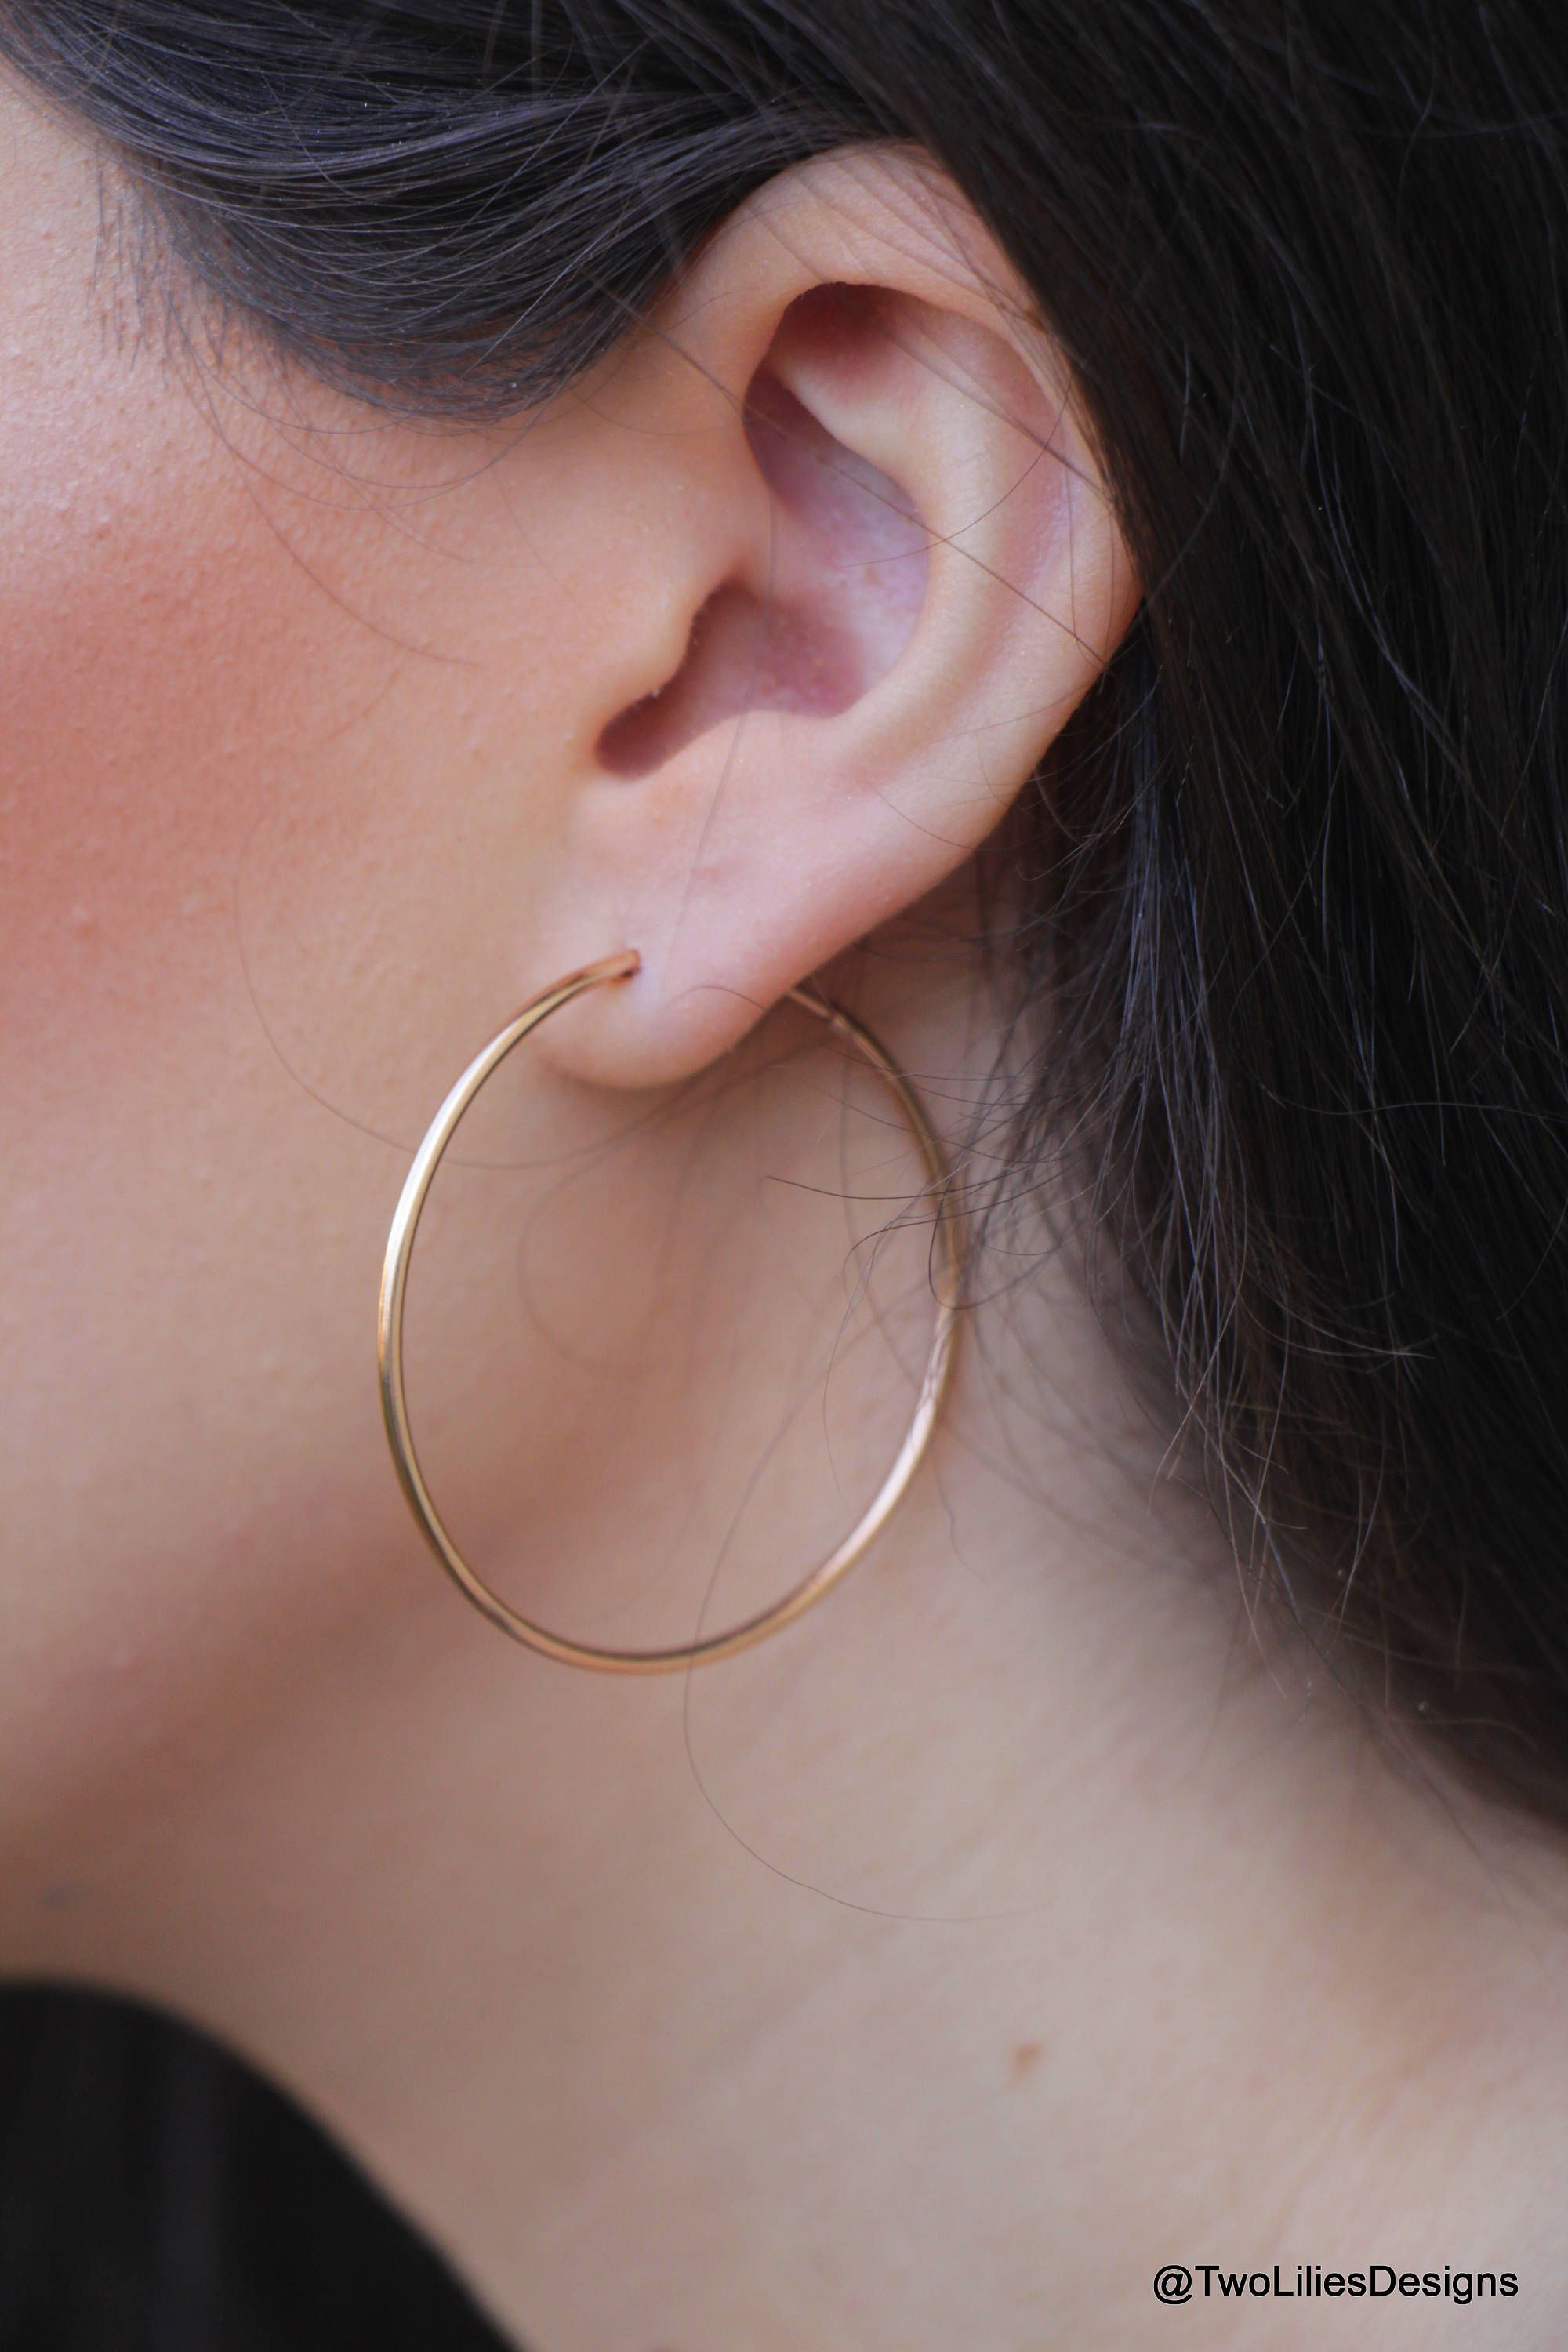 Available On My Etsy Rose Gold Hoops 44mm Large Hoop Earrings